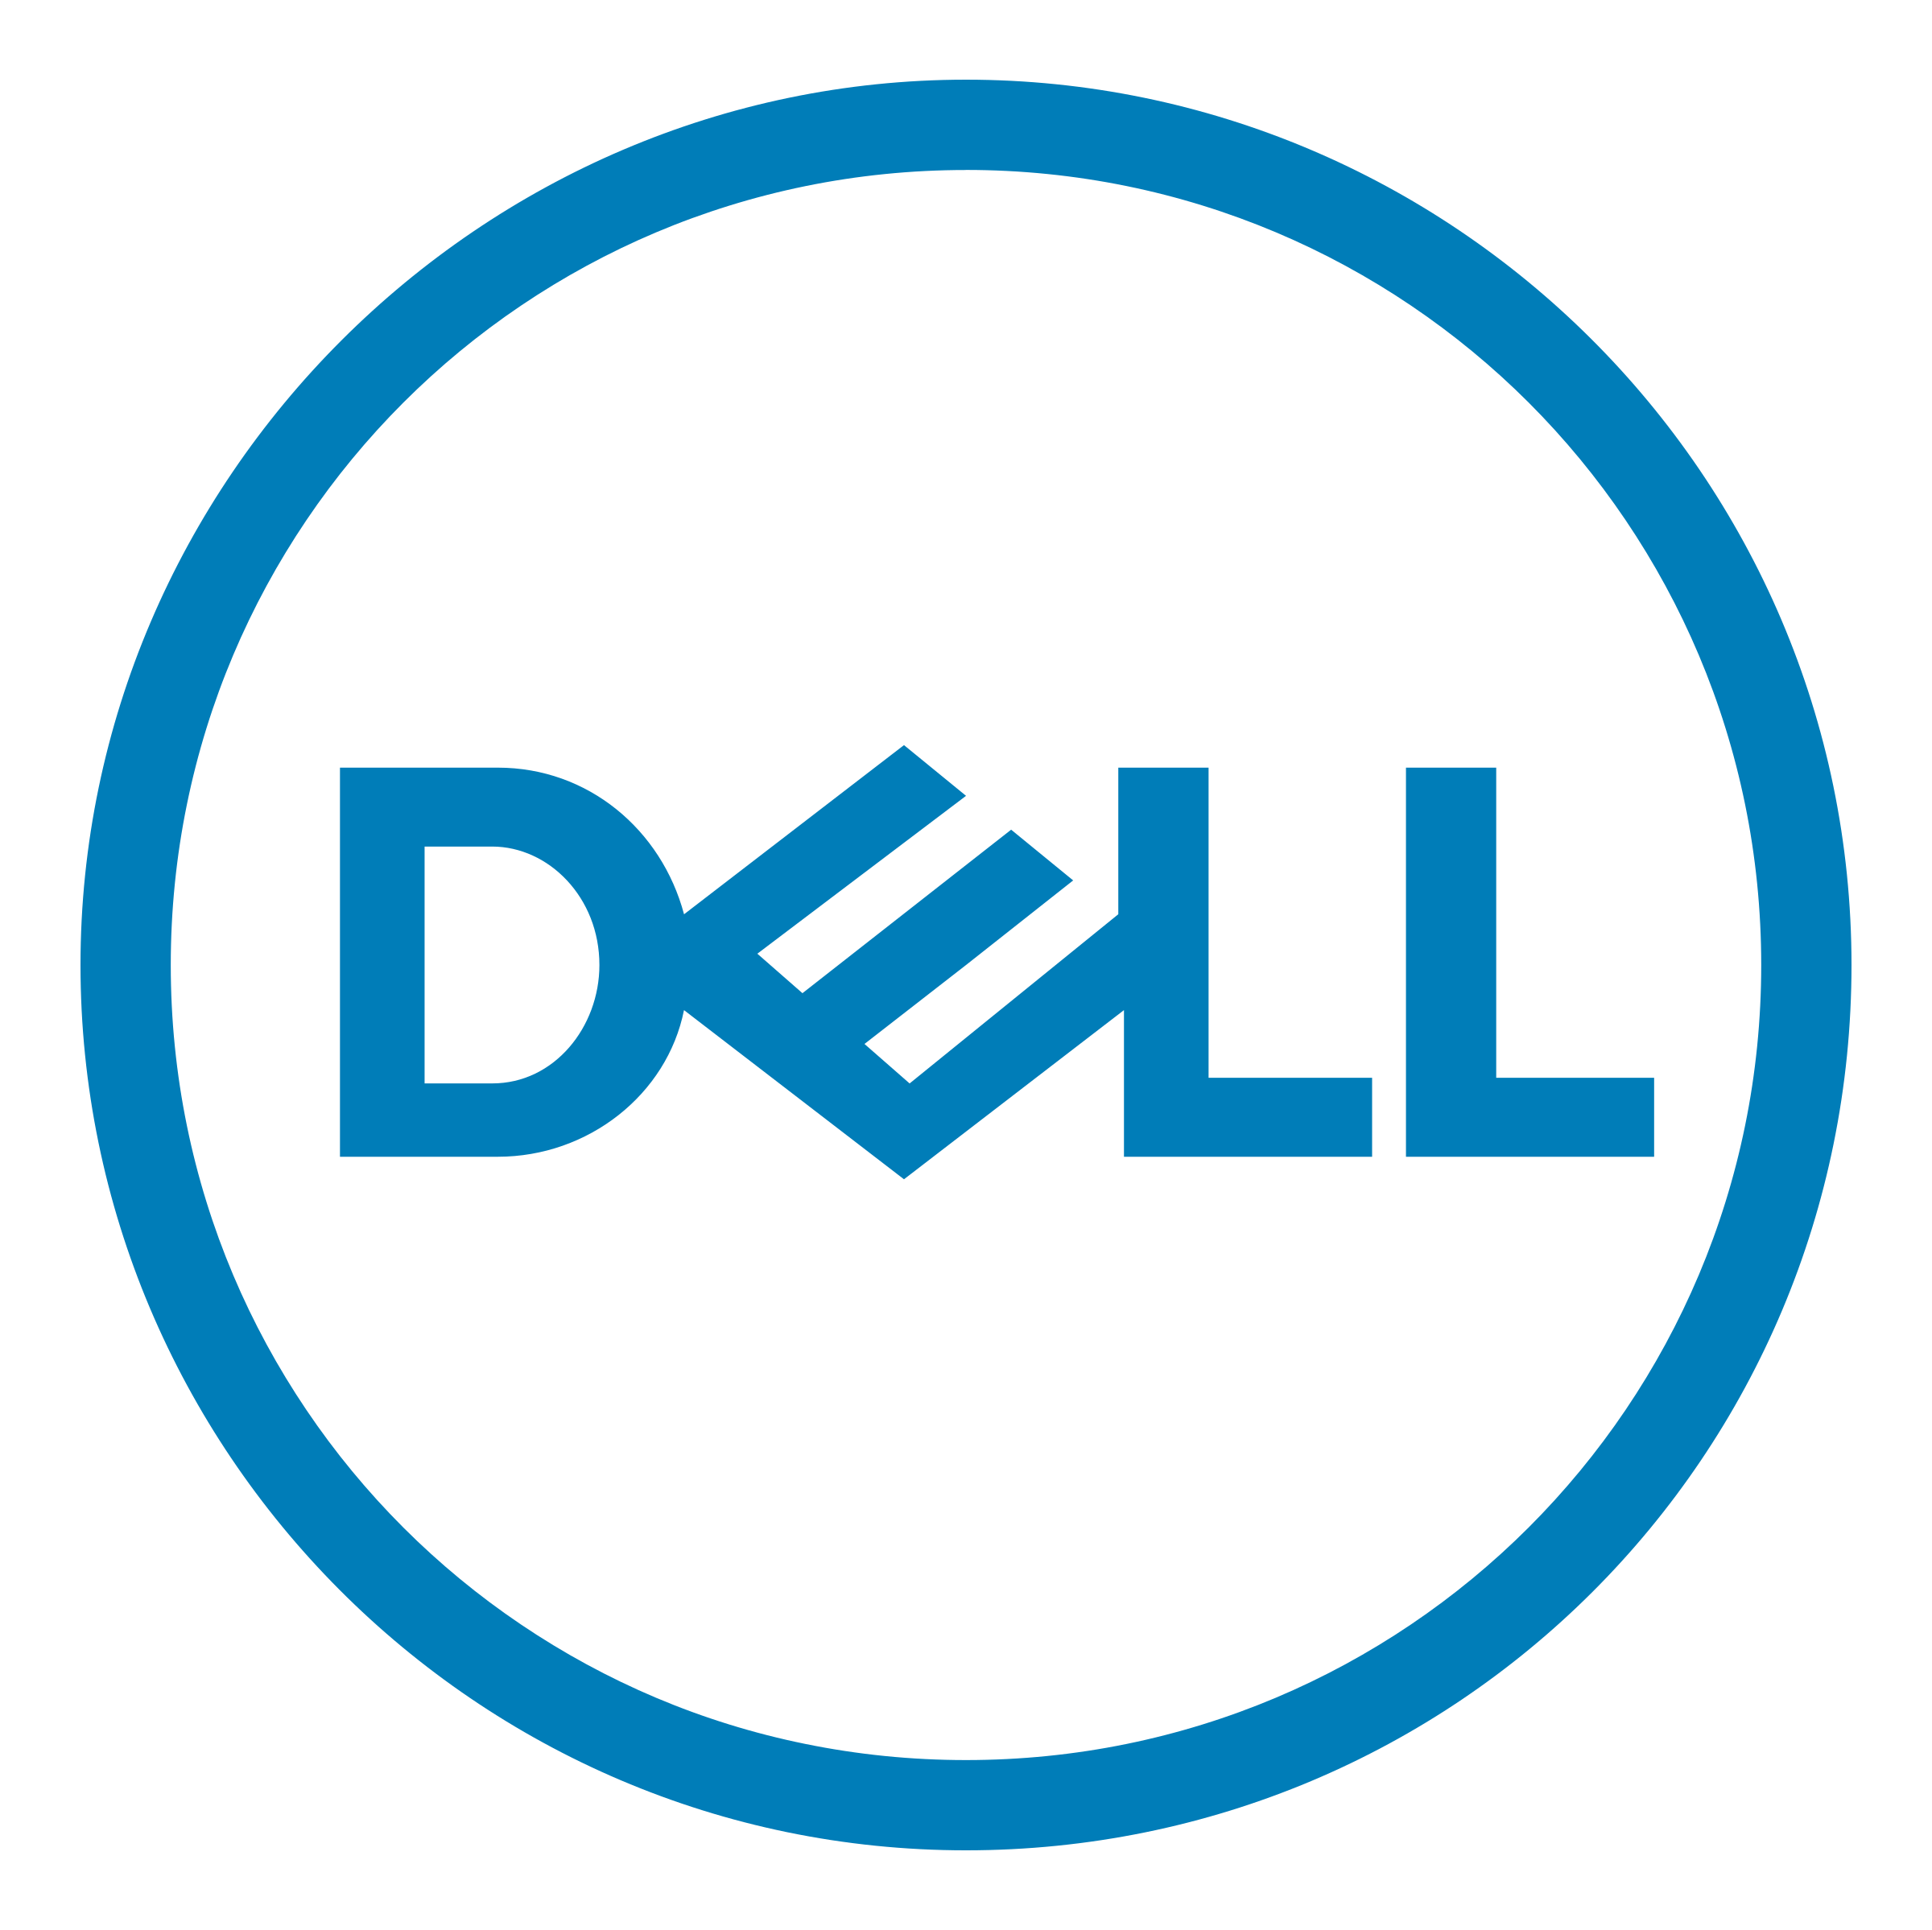 https://techsuccess.com.au/wp-content/uploads/2018/06/Dell-logo-Tech-Patrol.png